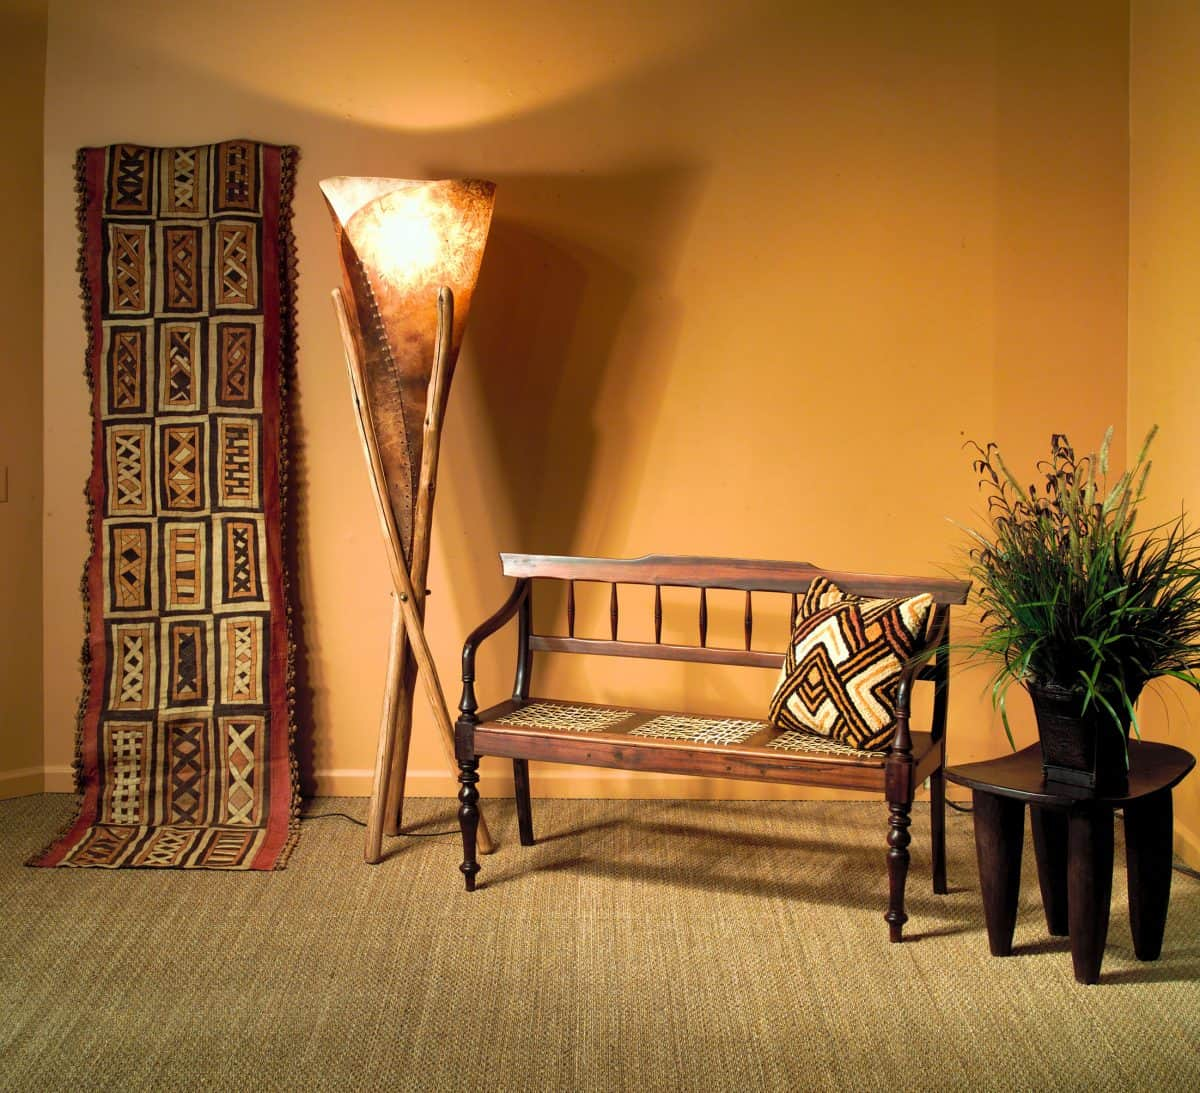 African Textiles│Kuba, showa cloth